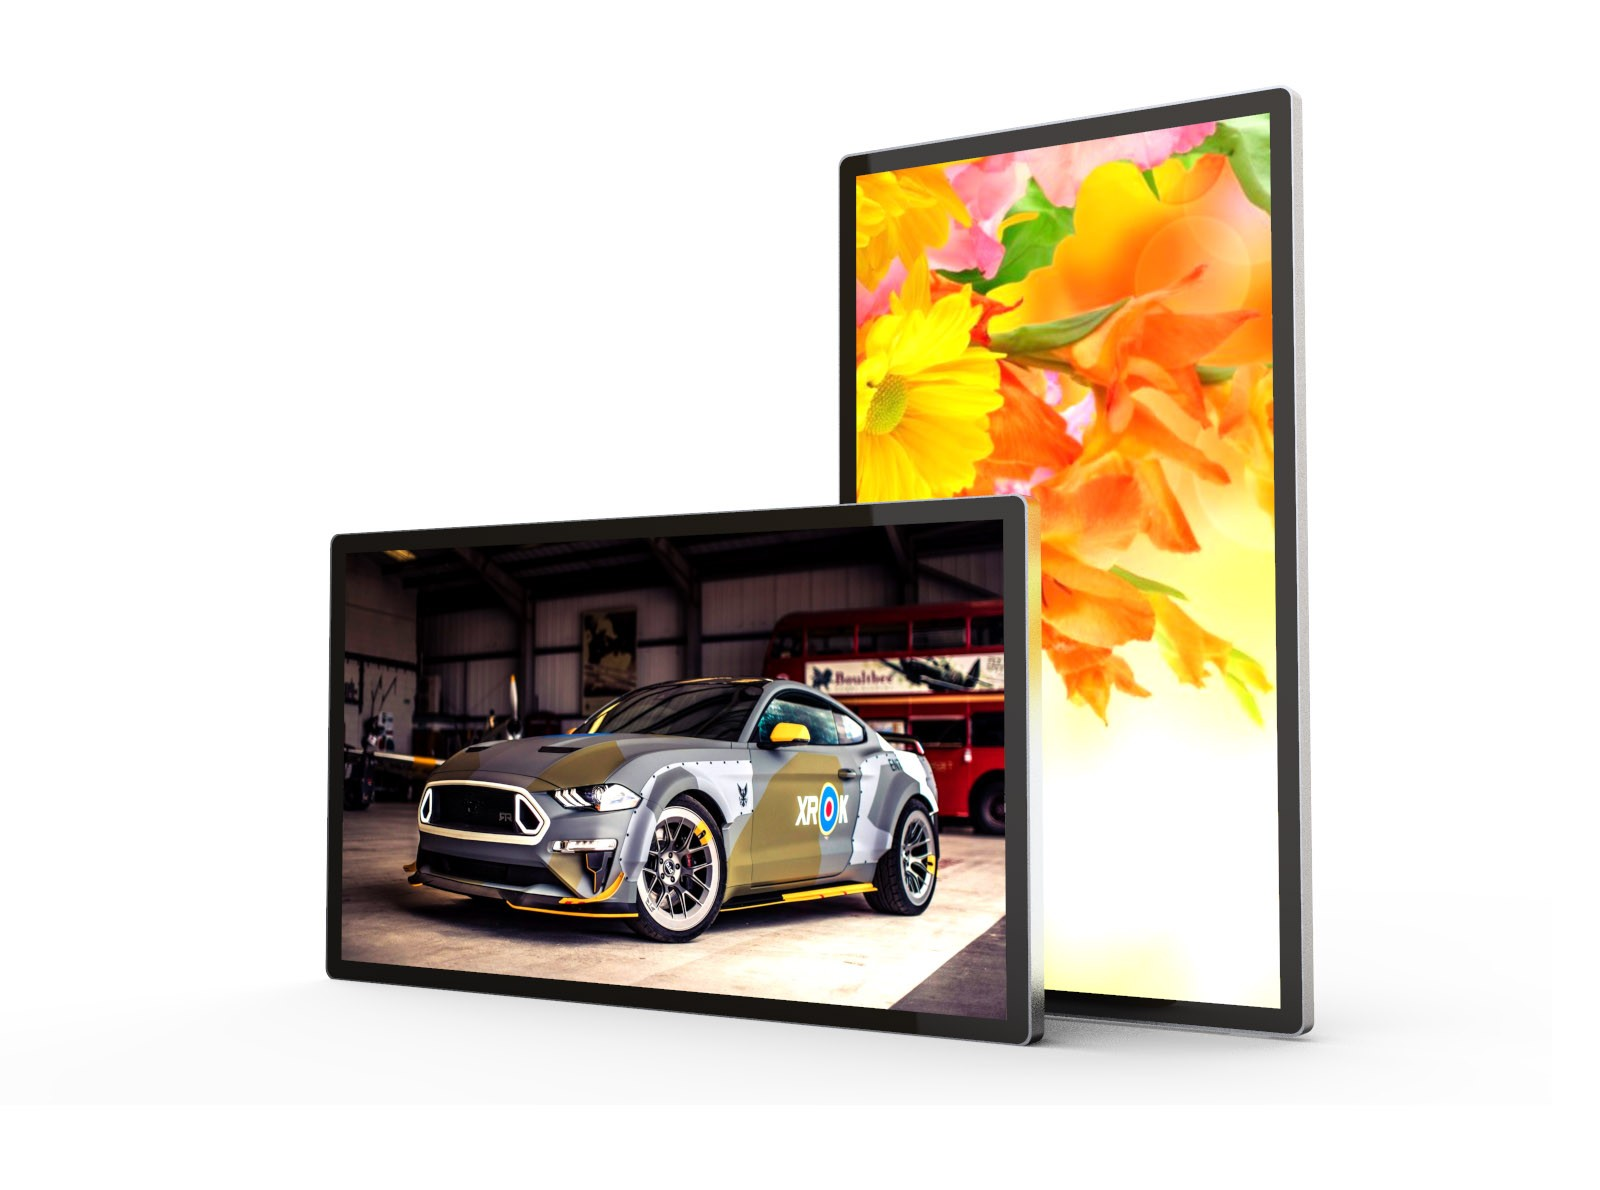 MG-GB320 Wall-mounted Digital Signage